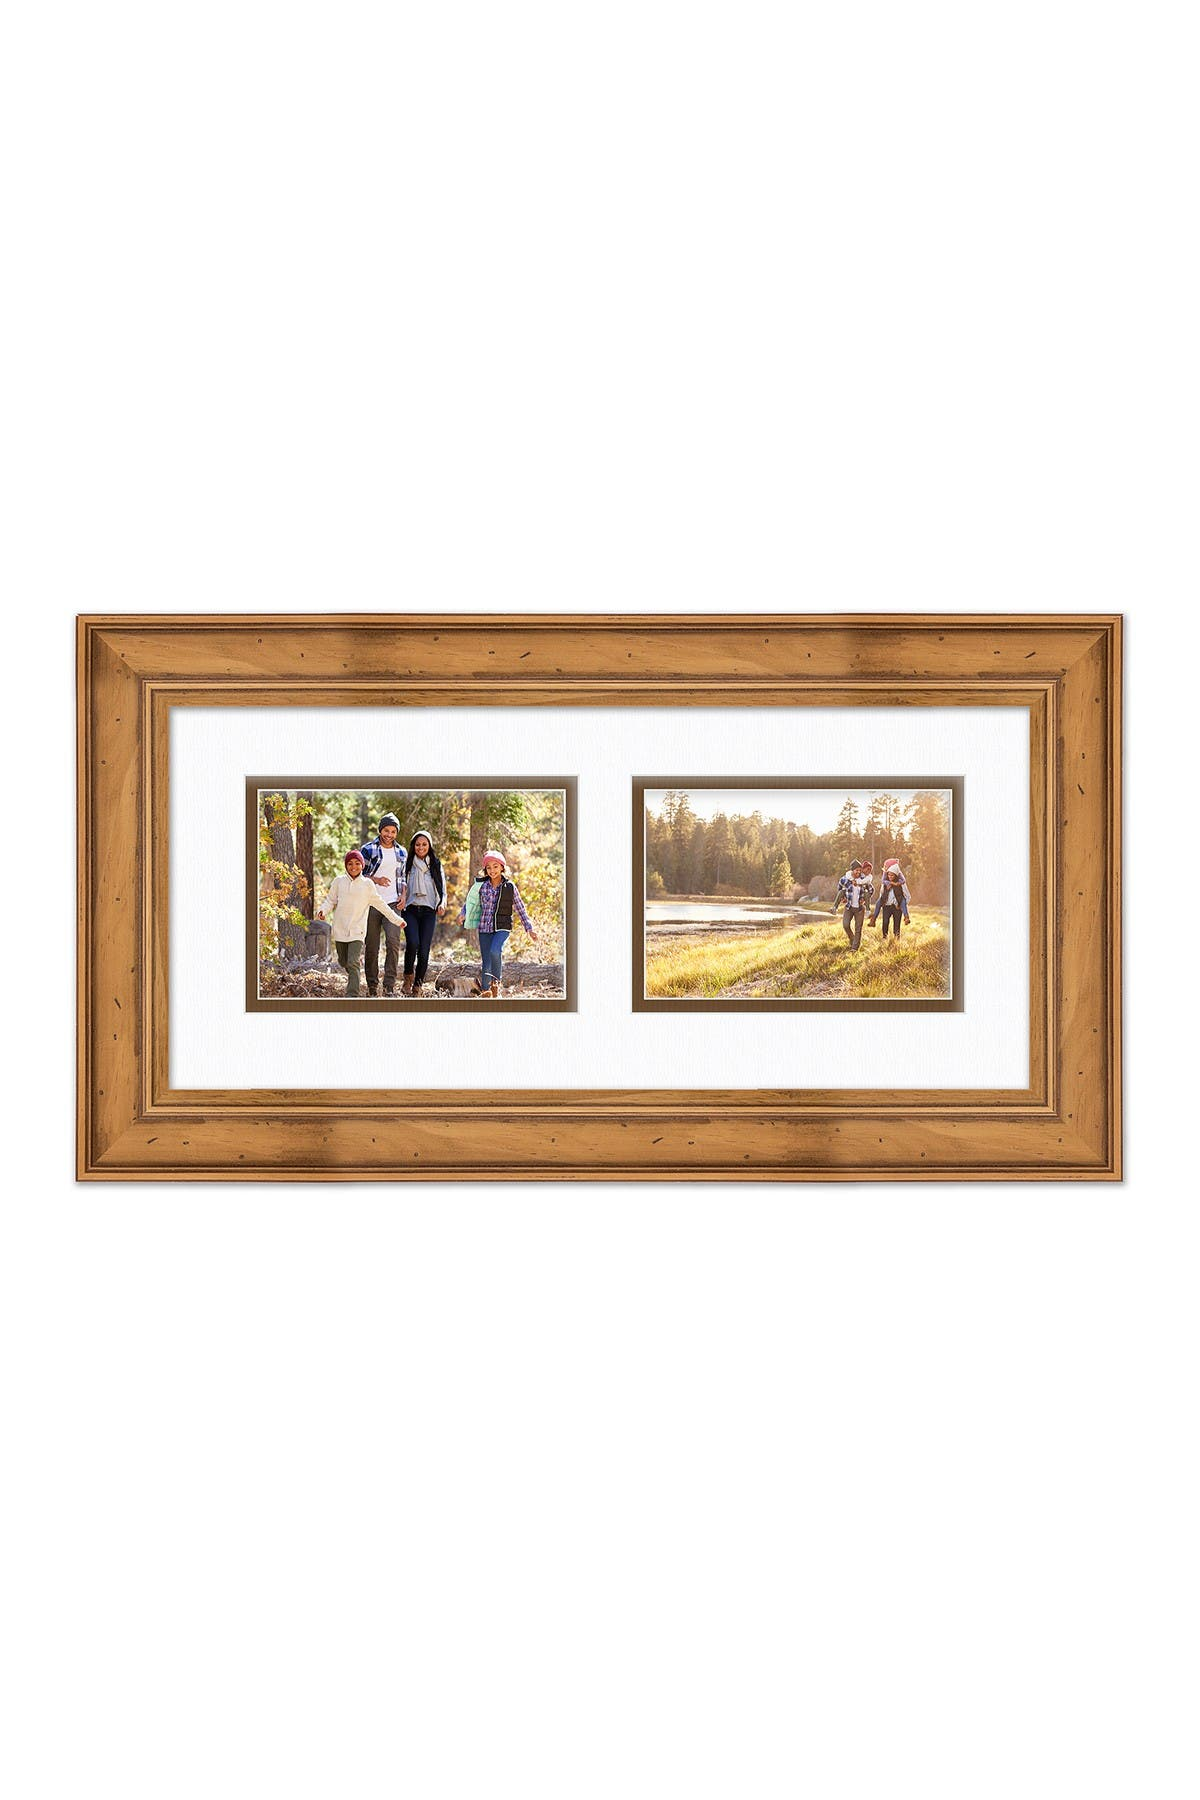 COURTSIDE MARKET Industrial Rustic Collection Natural 8x18 2-5x7 Openings Collage Frame at Nordstrom Rack